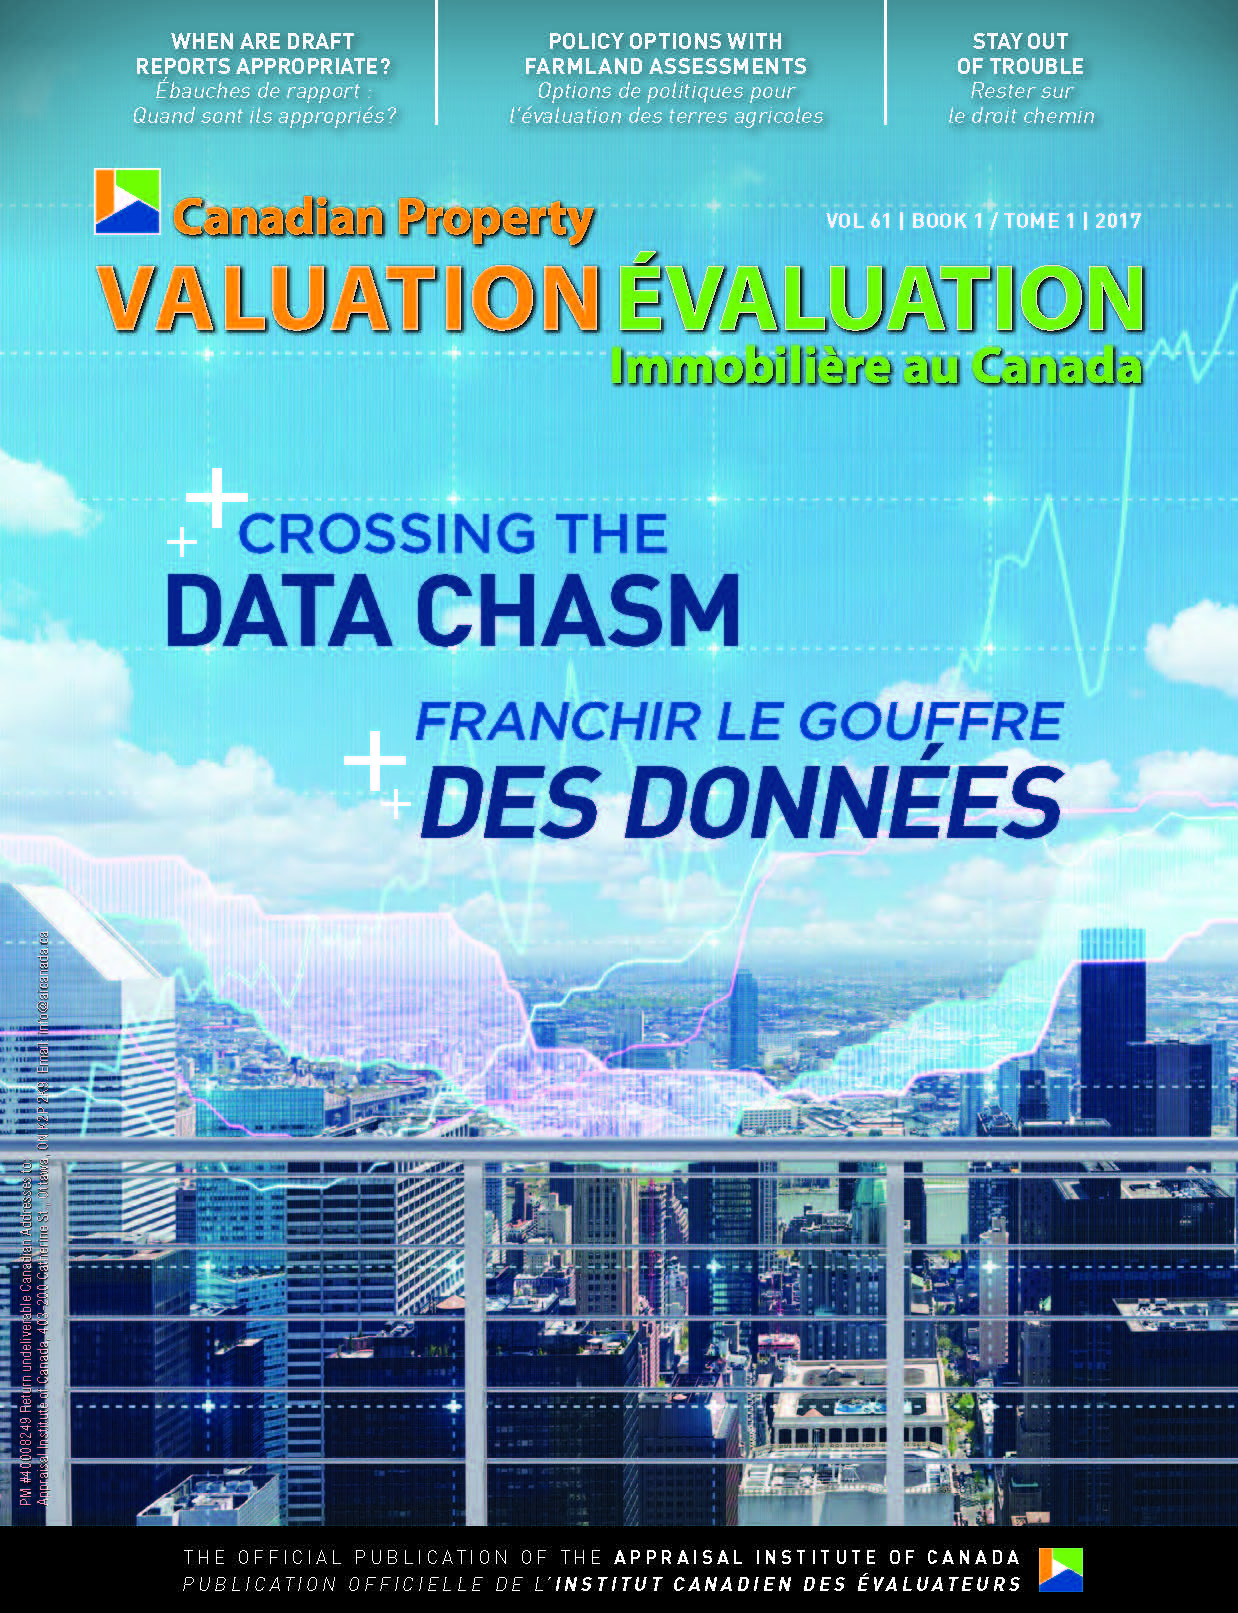 Crossing the Data Chasm in CRE: Having the Right Tools is Just the Beginning